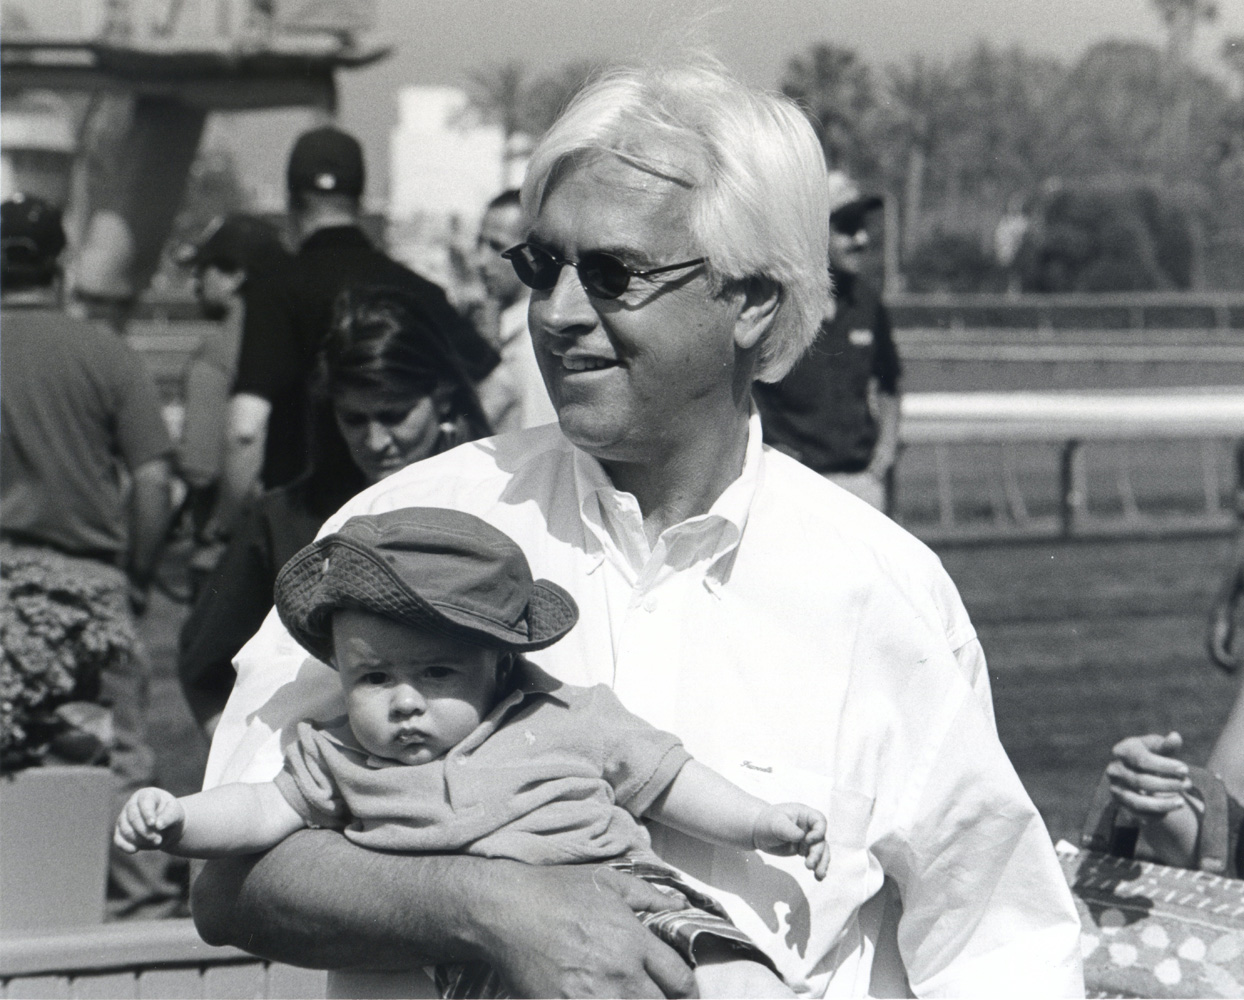 Bob Baffert and son Bode at Santa Anita Park, April 2005 (Bill Mochon/Museum Collection)